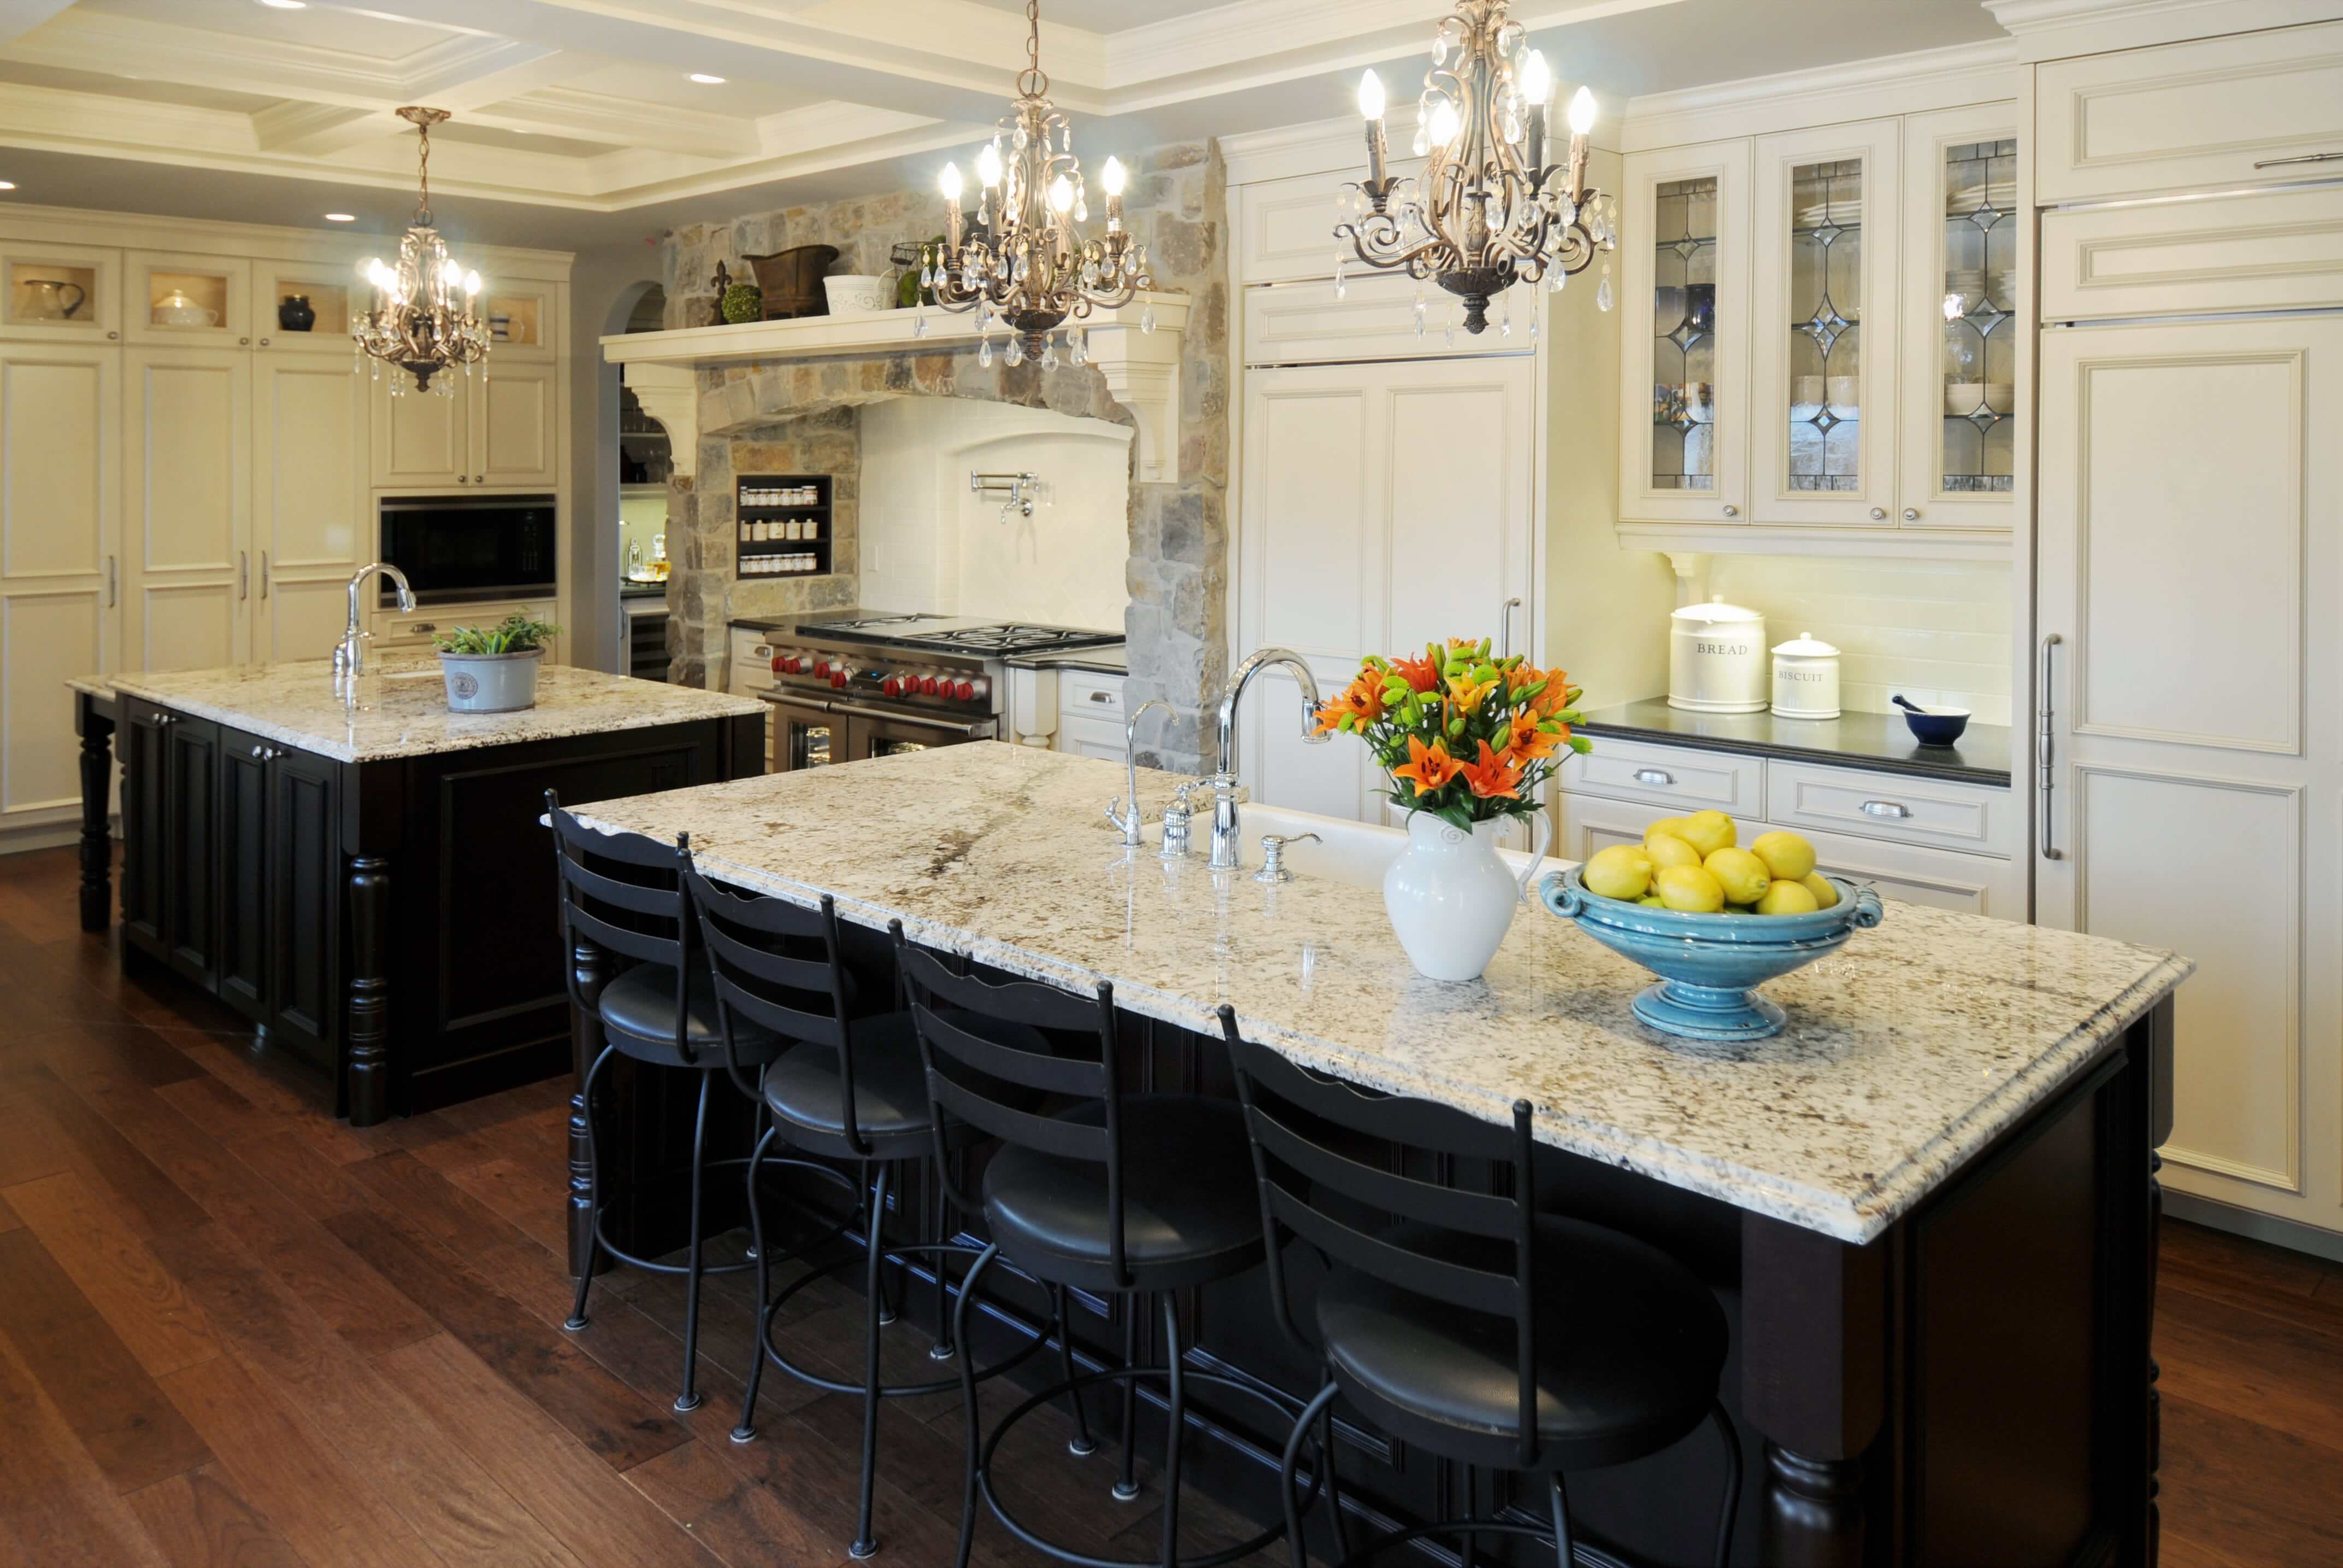 home advice ideas design best for island decorating kitchen stylish designs islands